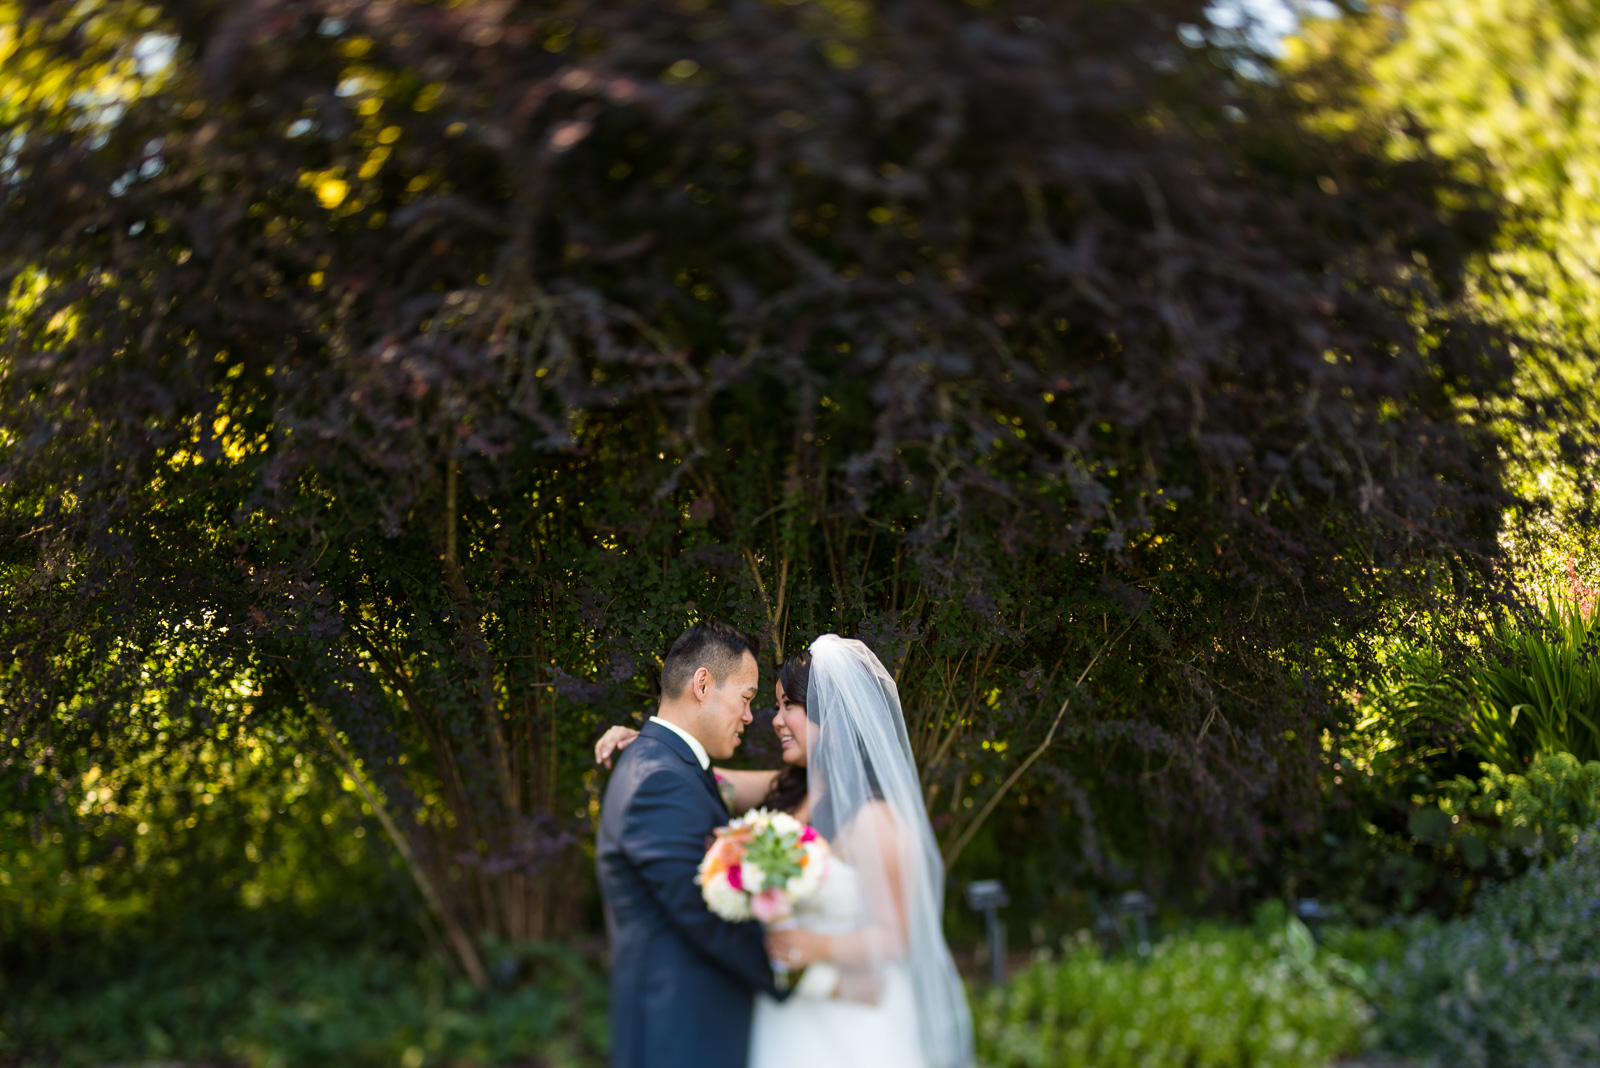 victoria-wedding-photographers-shaughnessy-restaurant-wedding-vandusen-gardens-wedding-20.jpg